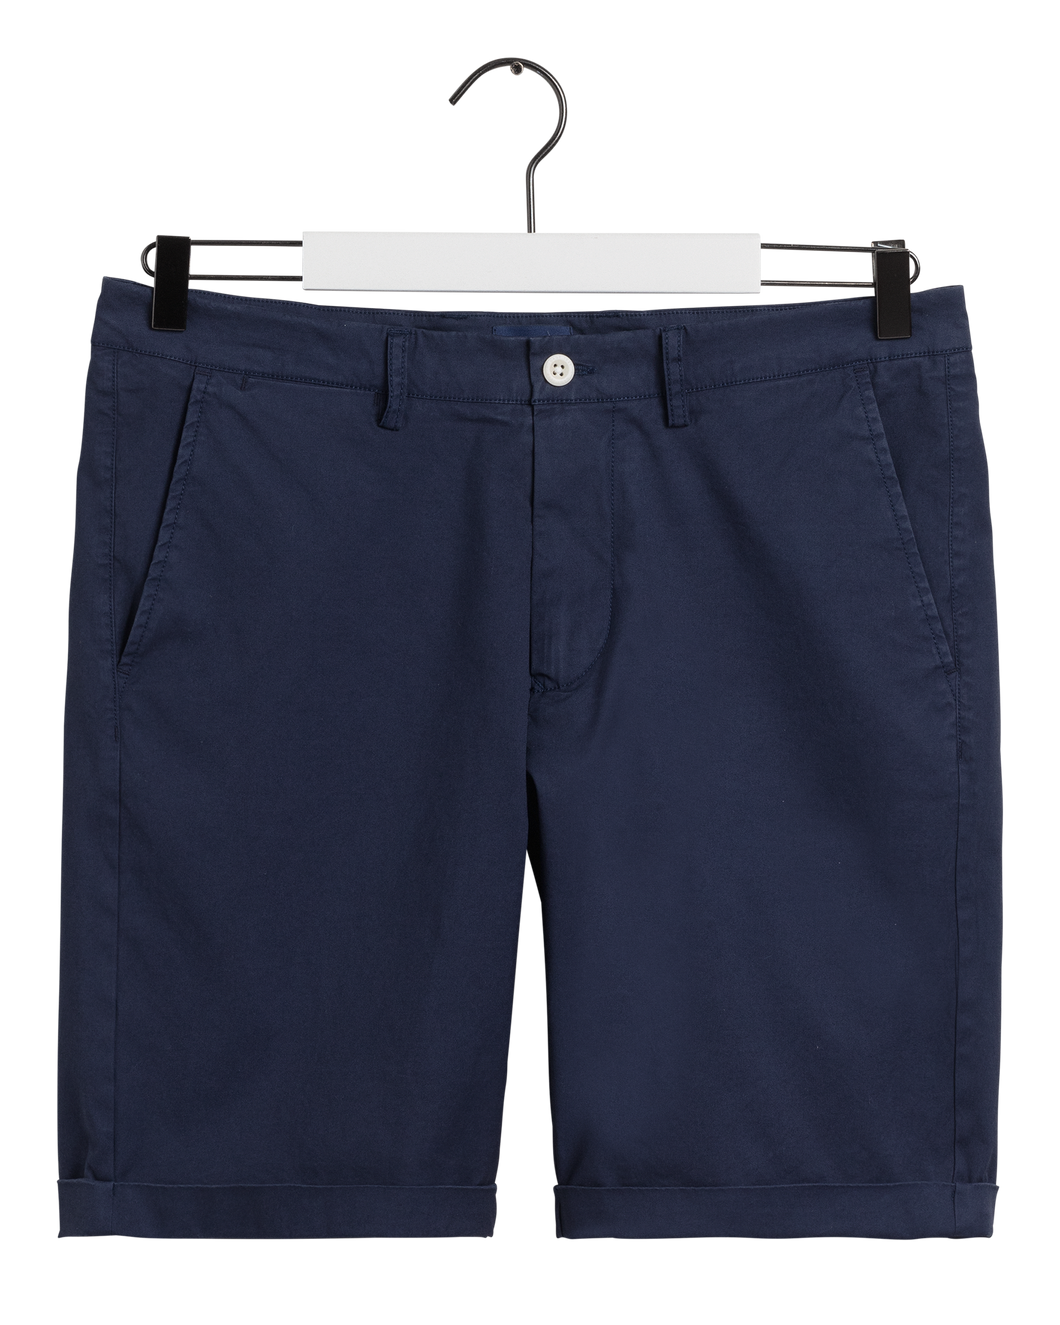 Gant Shorts in regular Classic fit.   The Regular Sunfaded Shorts    , chosen in a Marine colour